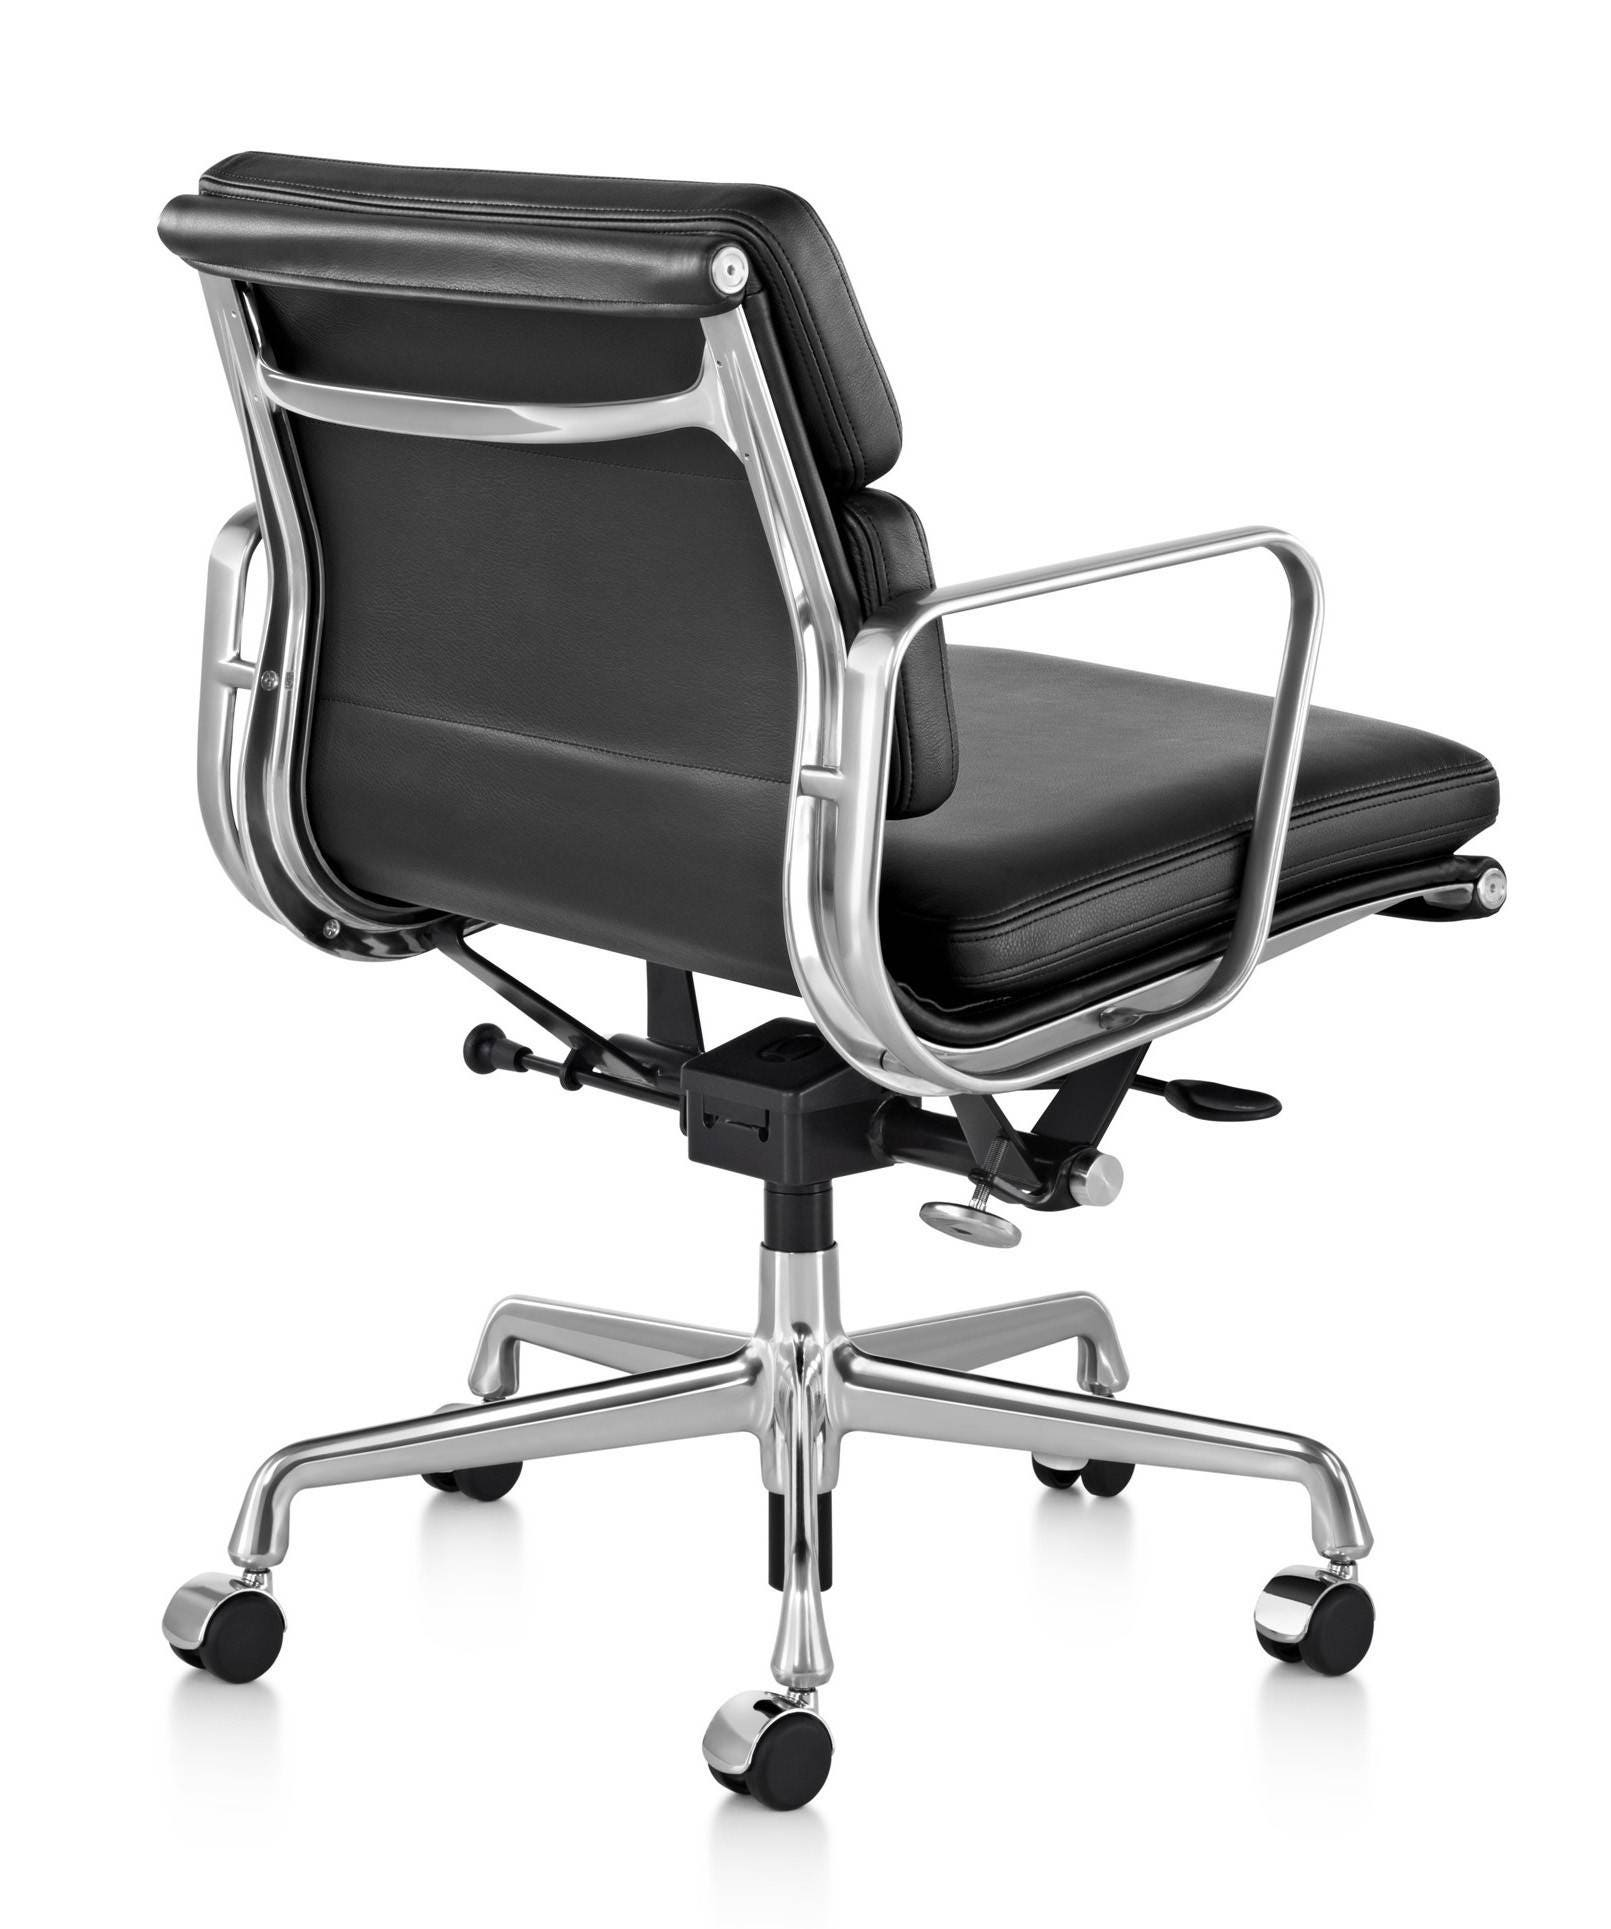 herman miller eames® soft pad chair  management chair  gr shop  -